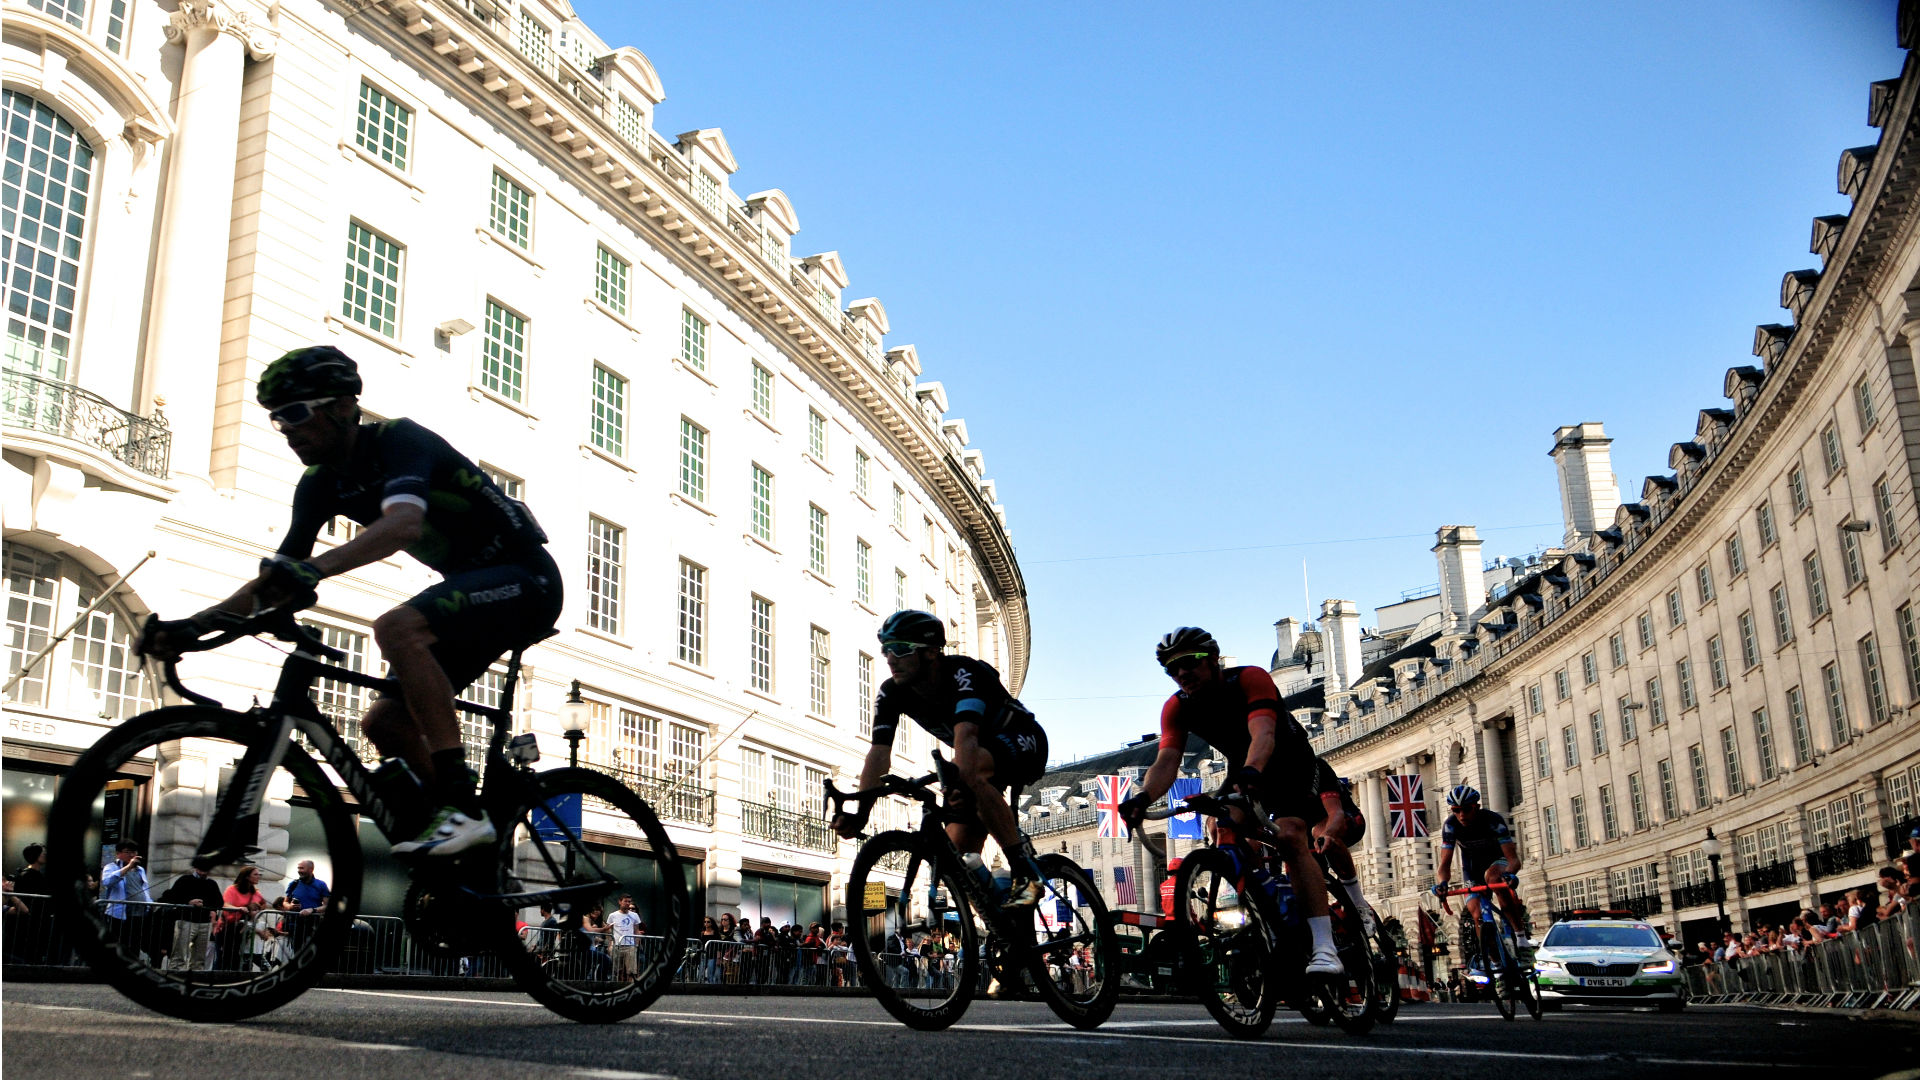 Cyclists from the OVO Energy Tour of Britain racing through the streets of London. Image courtesy of Tour of Britain.